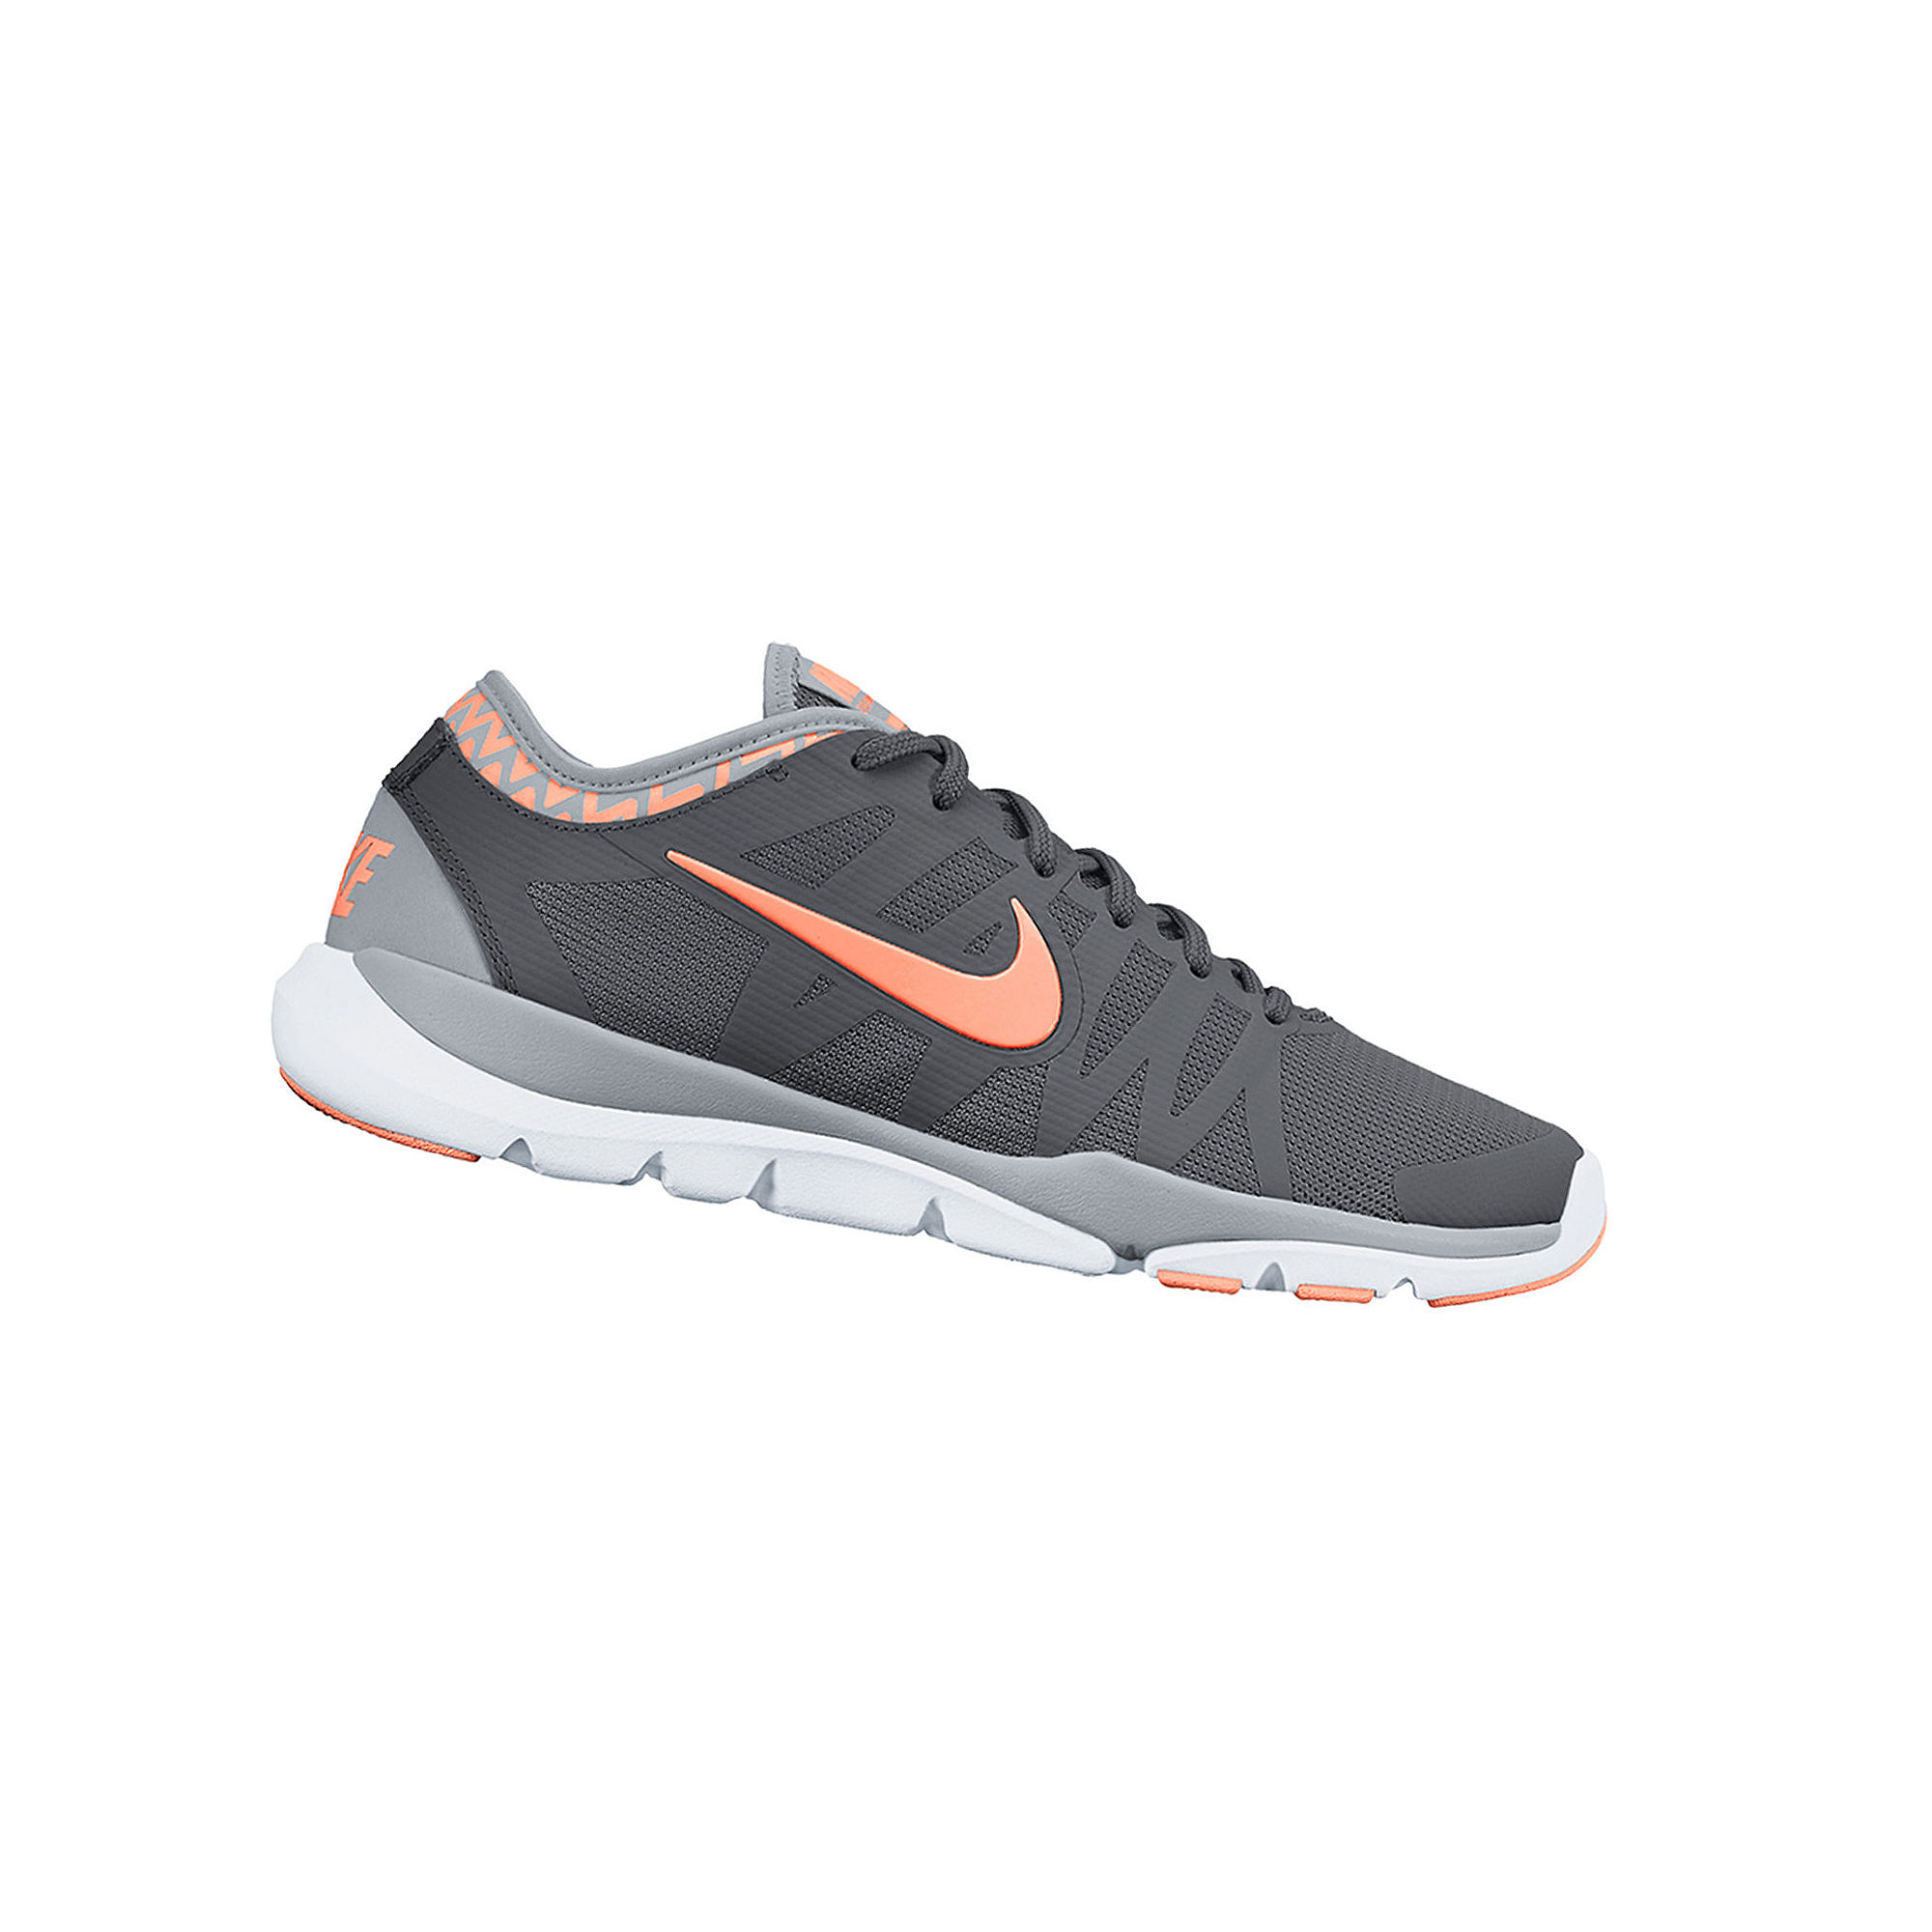 4c41197dda02 UPC 888409617315 product image for Nike Flex Supreme TR 3 Womens Training  Shoes